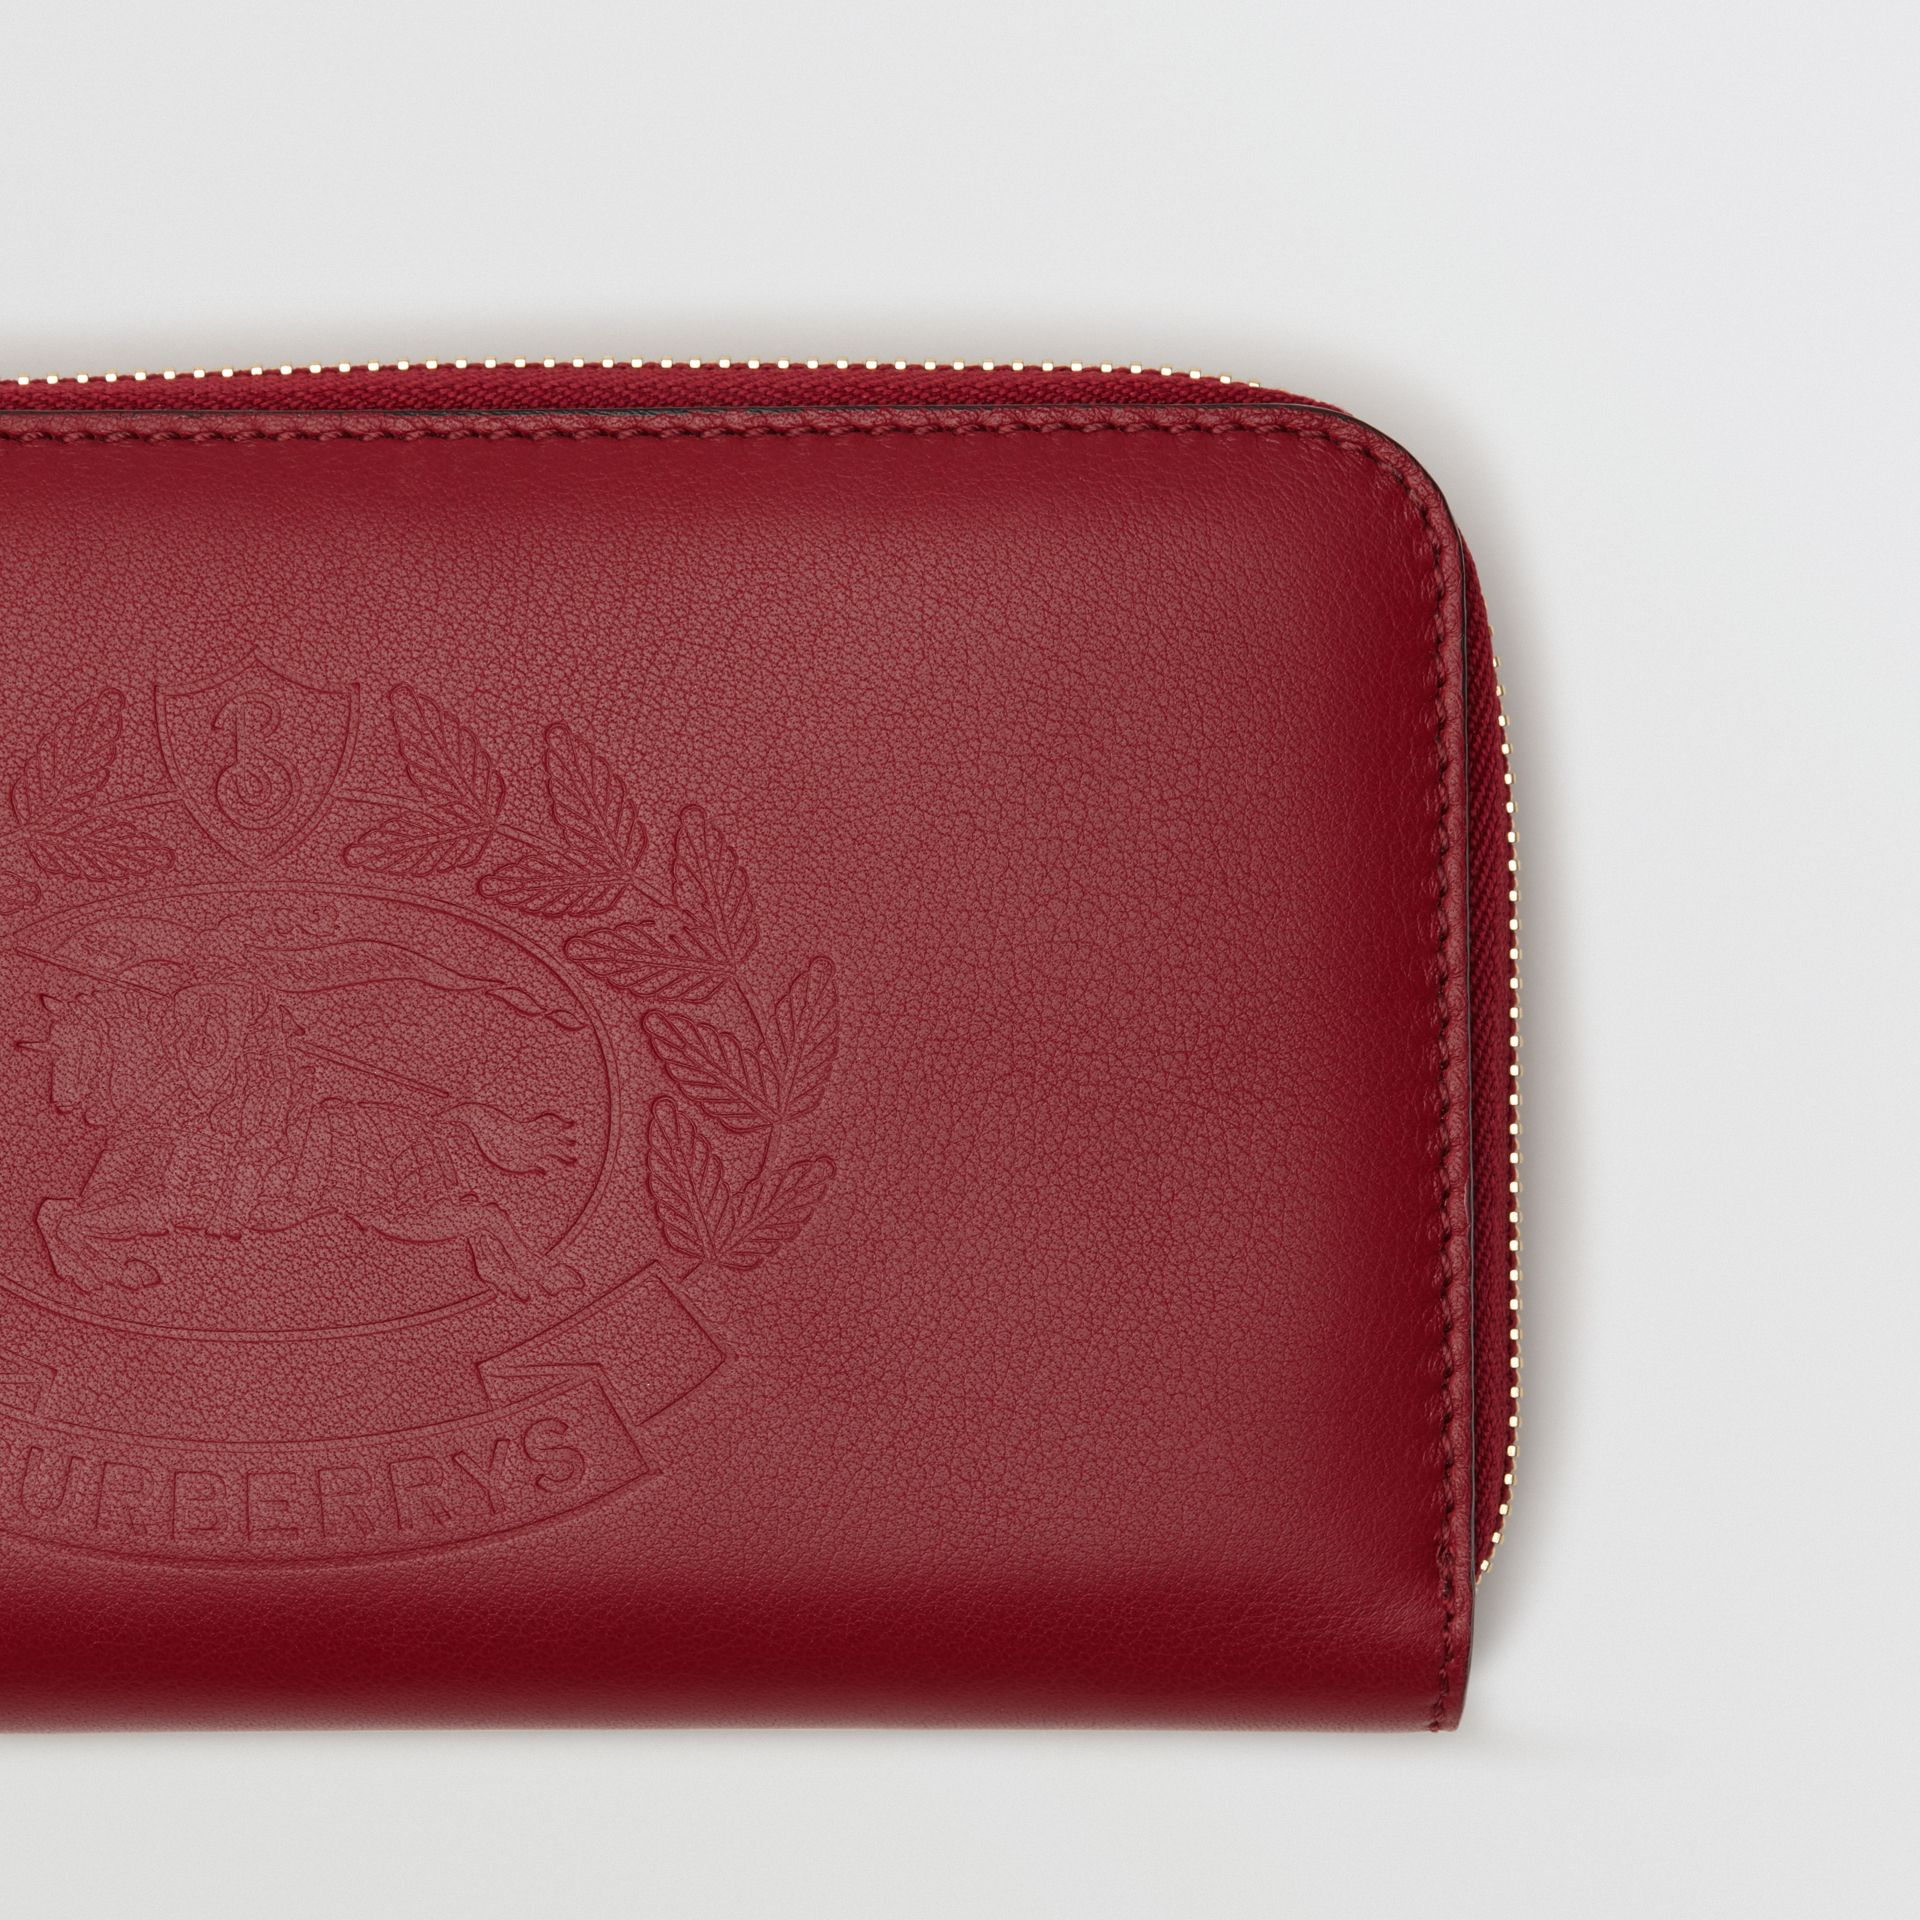 Embossed Crest Two-tone Leather Ziparound Wallet in Crimson - Women | Burberry Hong Kong - gallery image 1